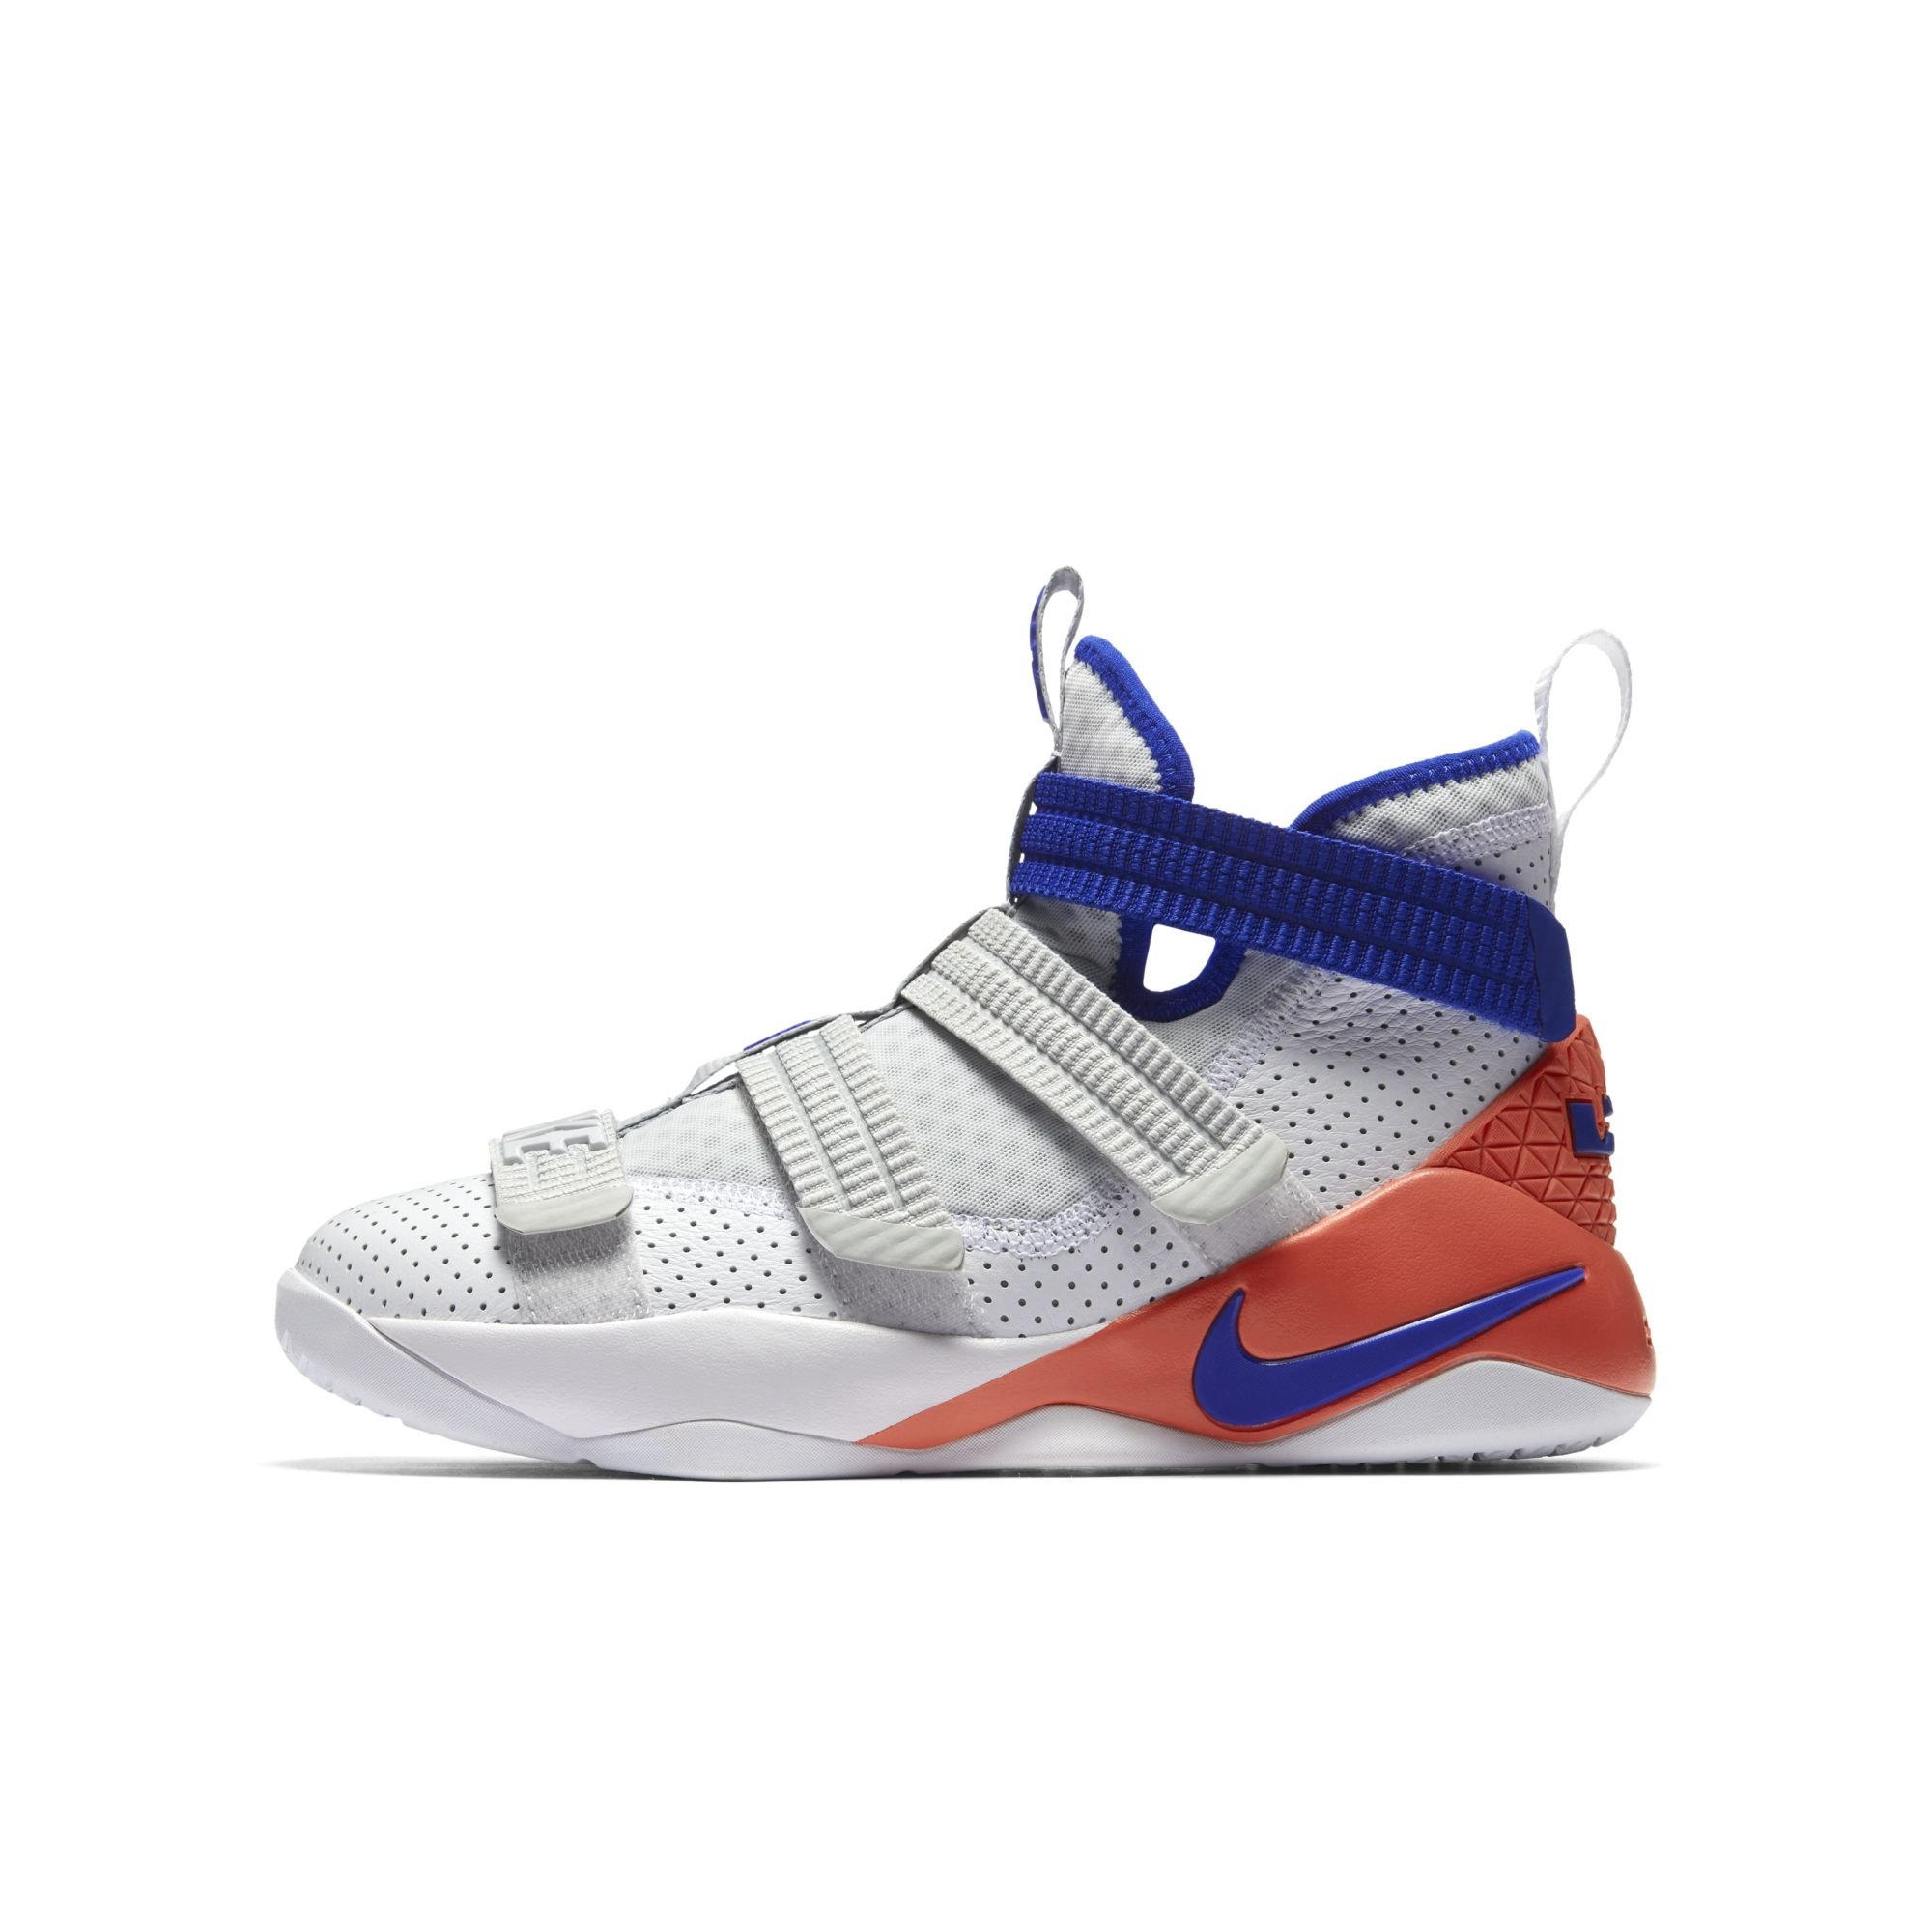 "Nike LeBron Soldier 11 GS ""Knicks"""